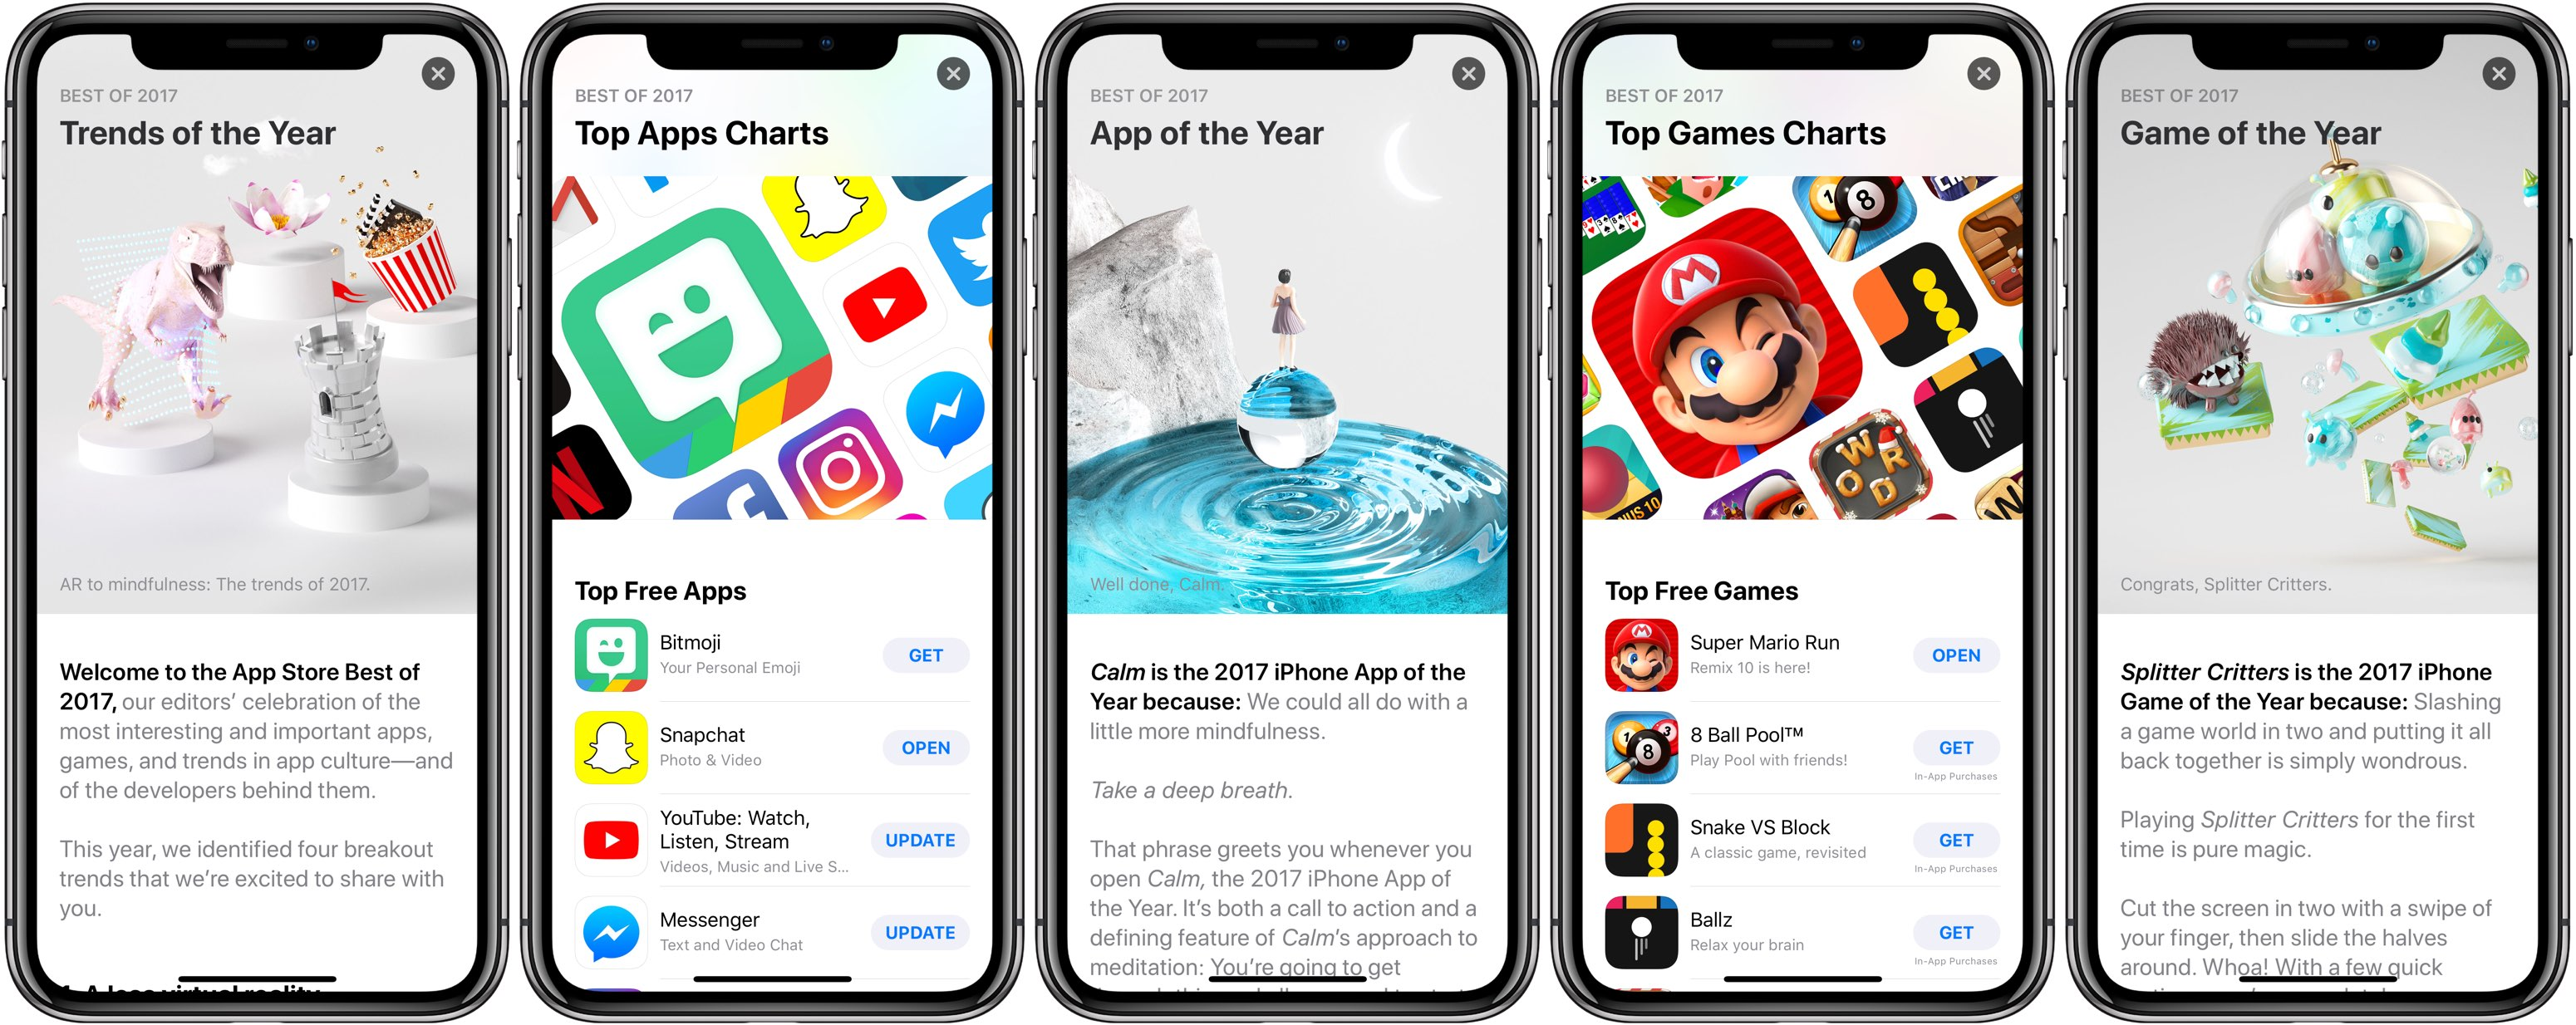 top free iphone games rewind 2017 apple reveals most popular apps 1846